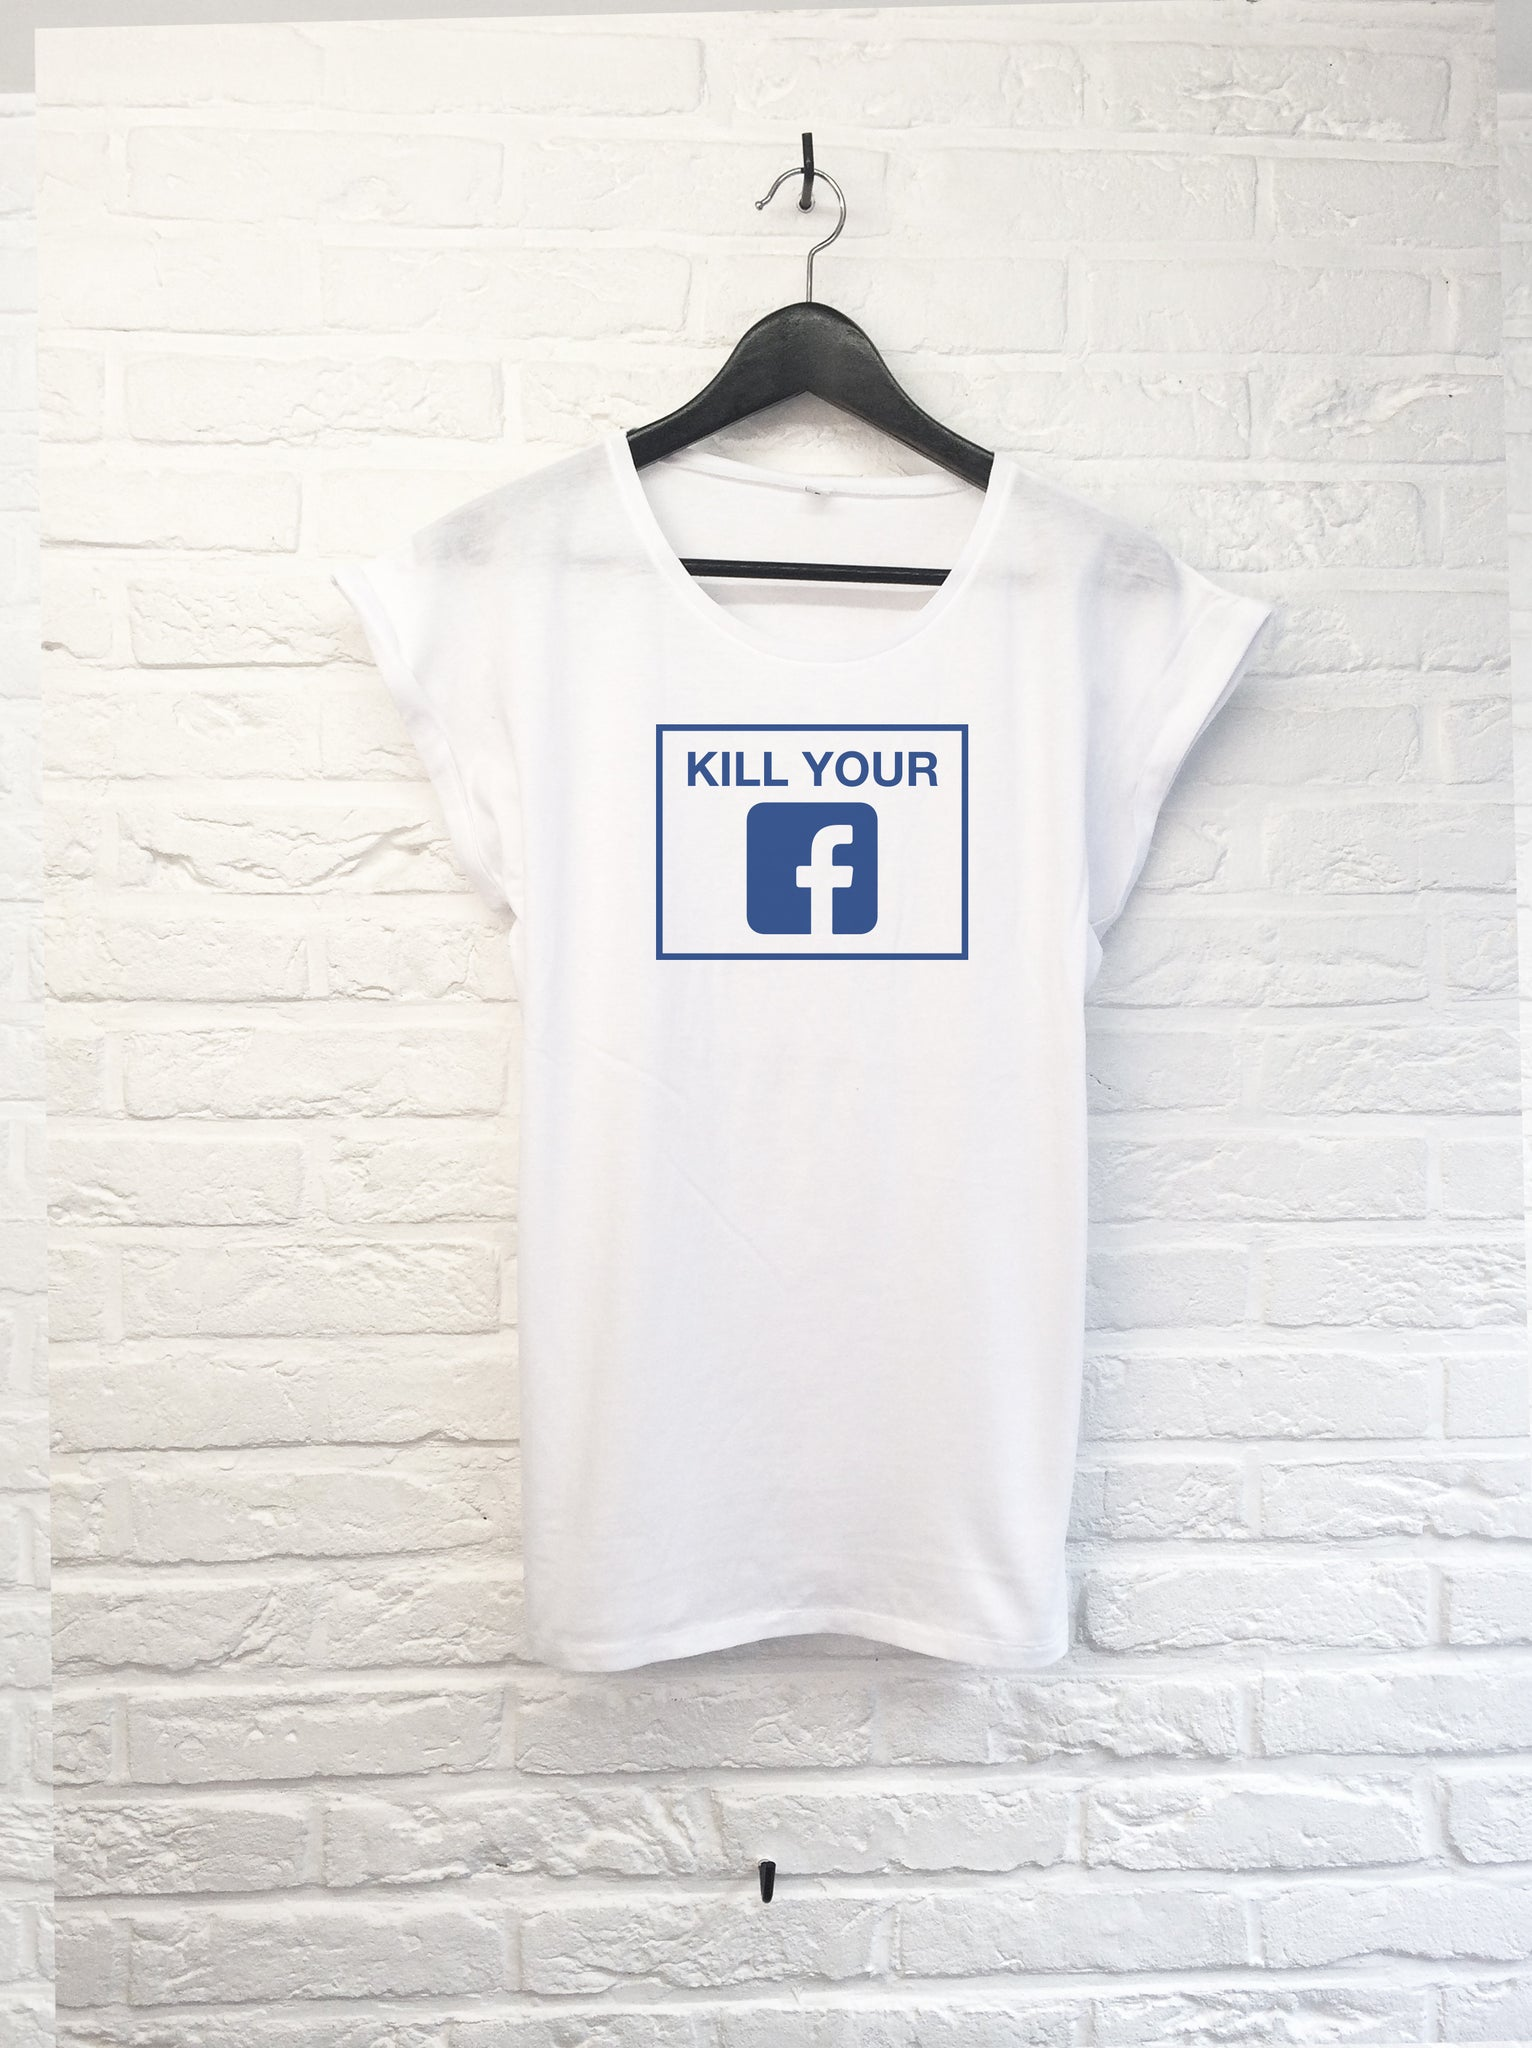 Kill your facebook - Femme-T shirt-Atelier Amelot